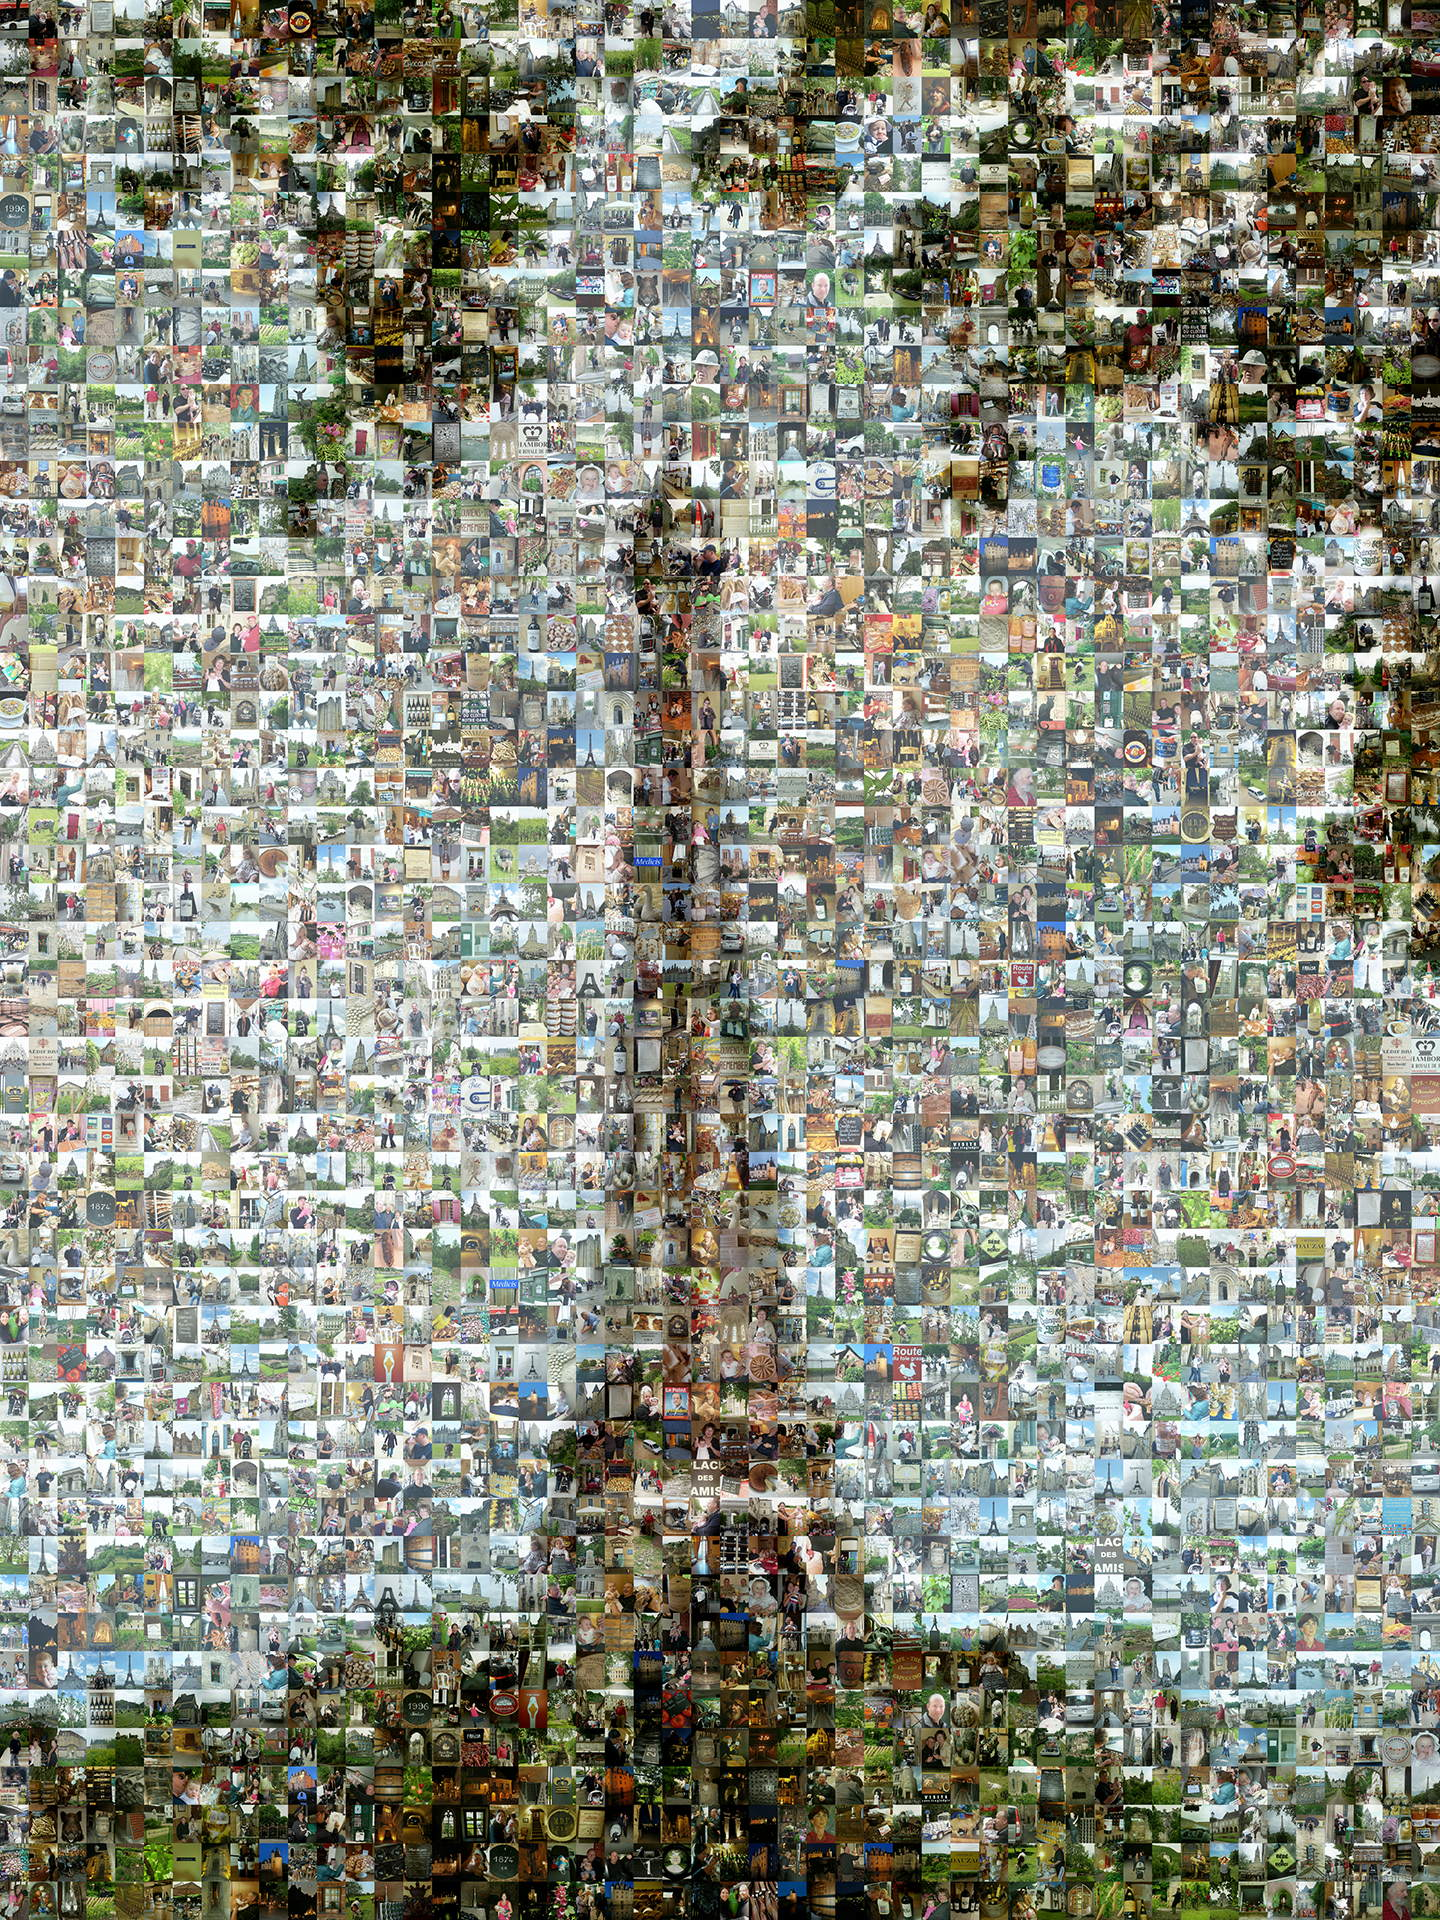 photo mosaic this Eiffel Tower was created using 1327 vacation photos